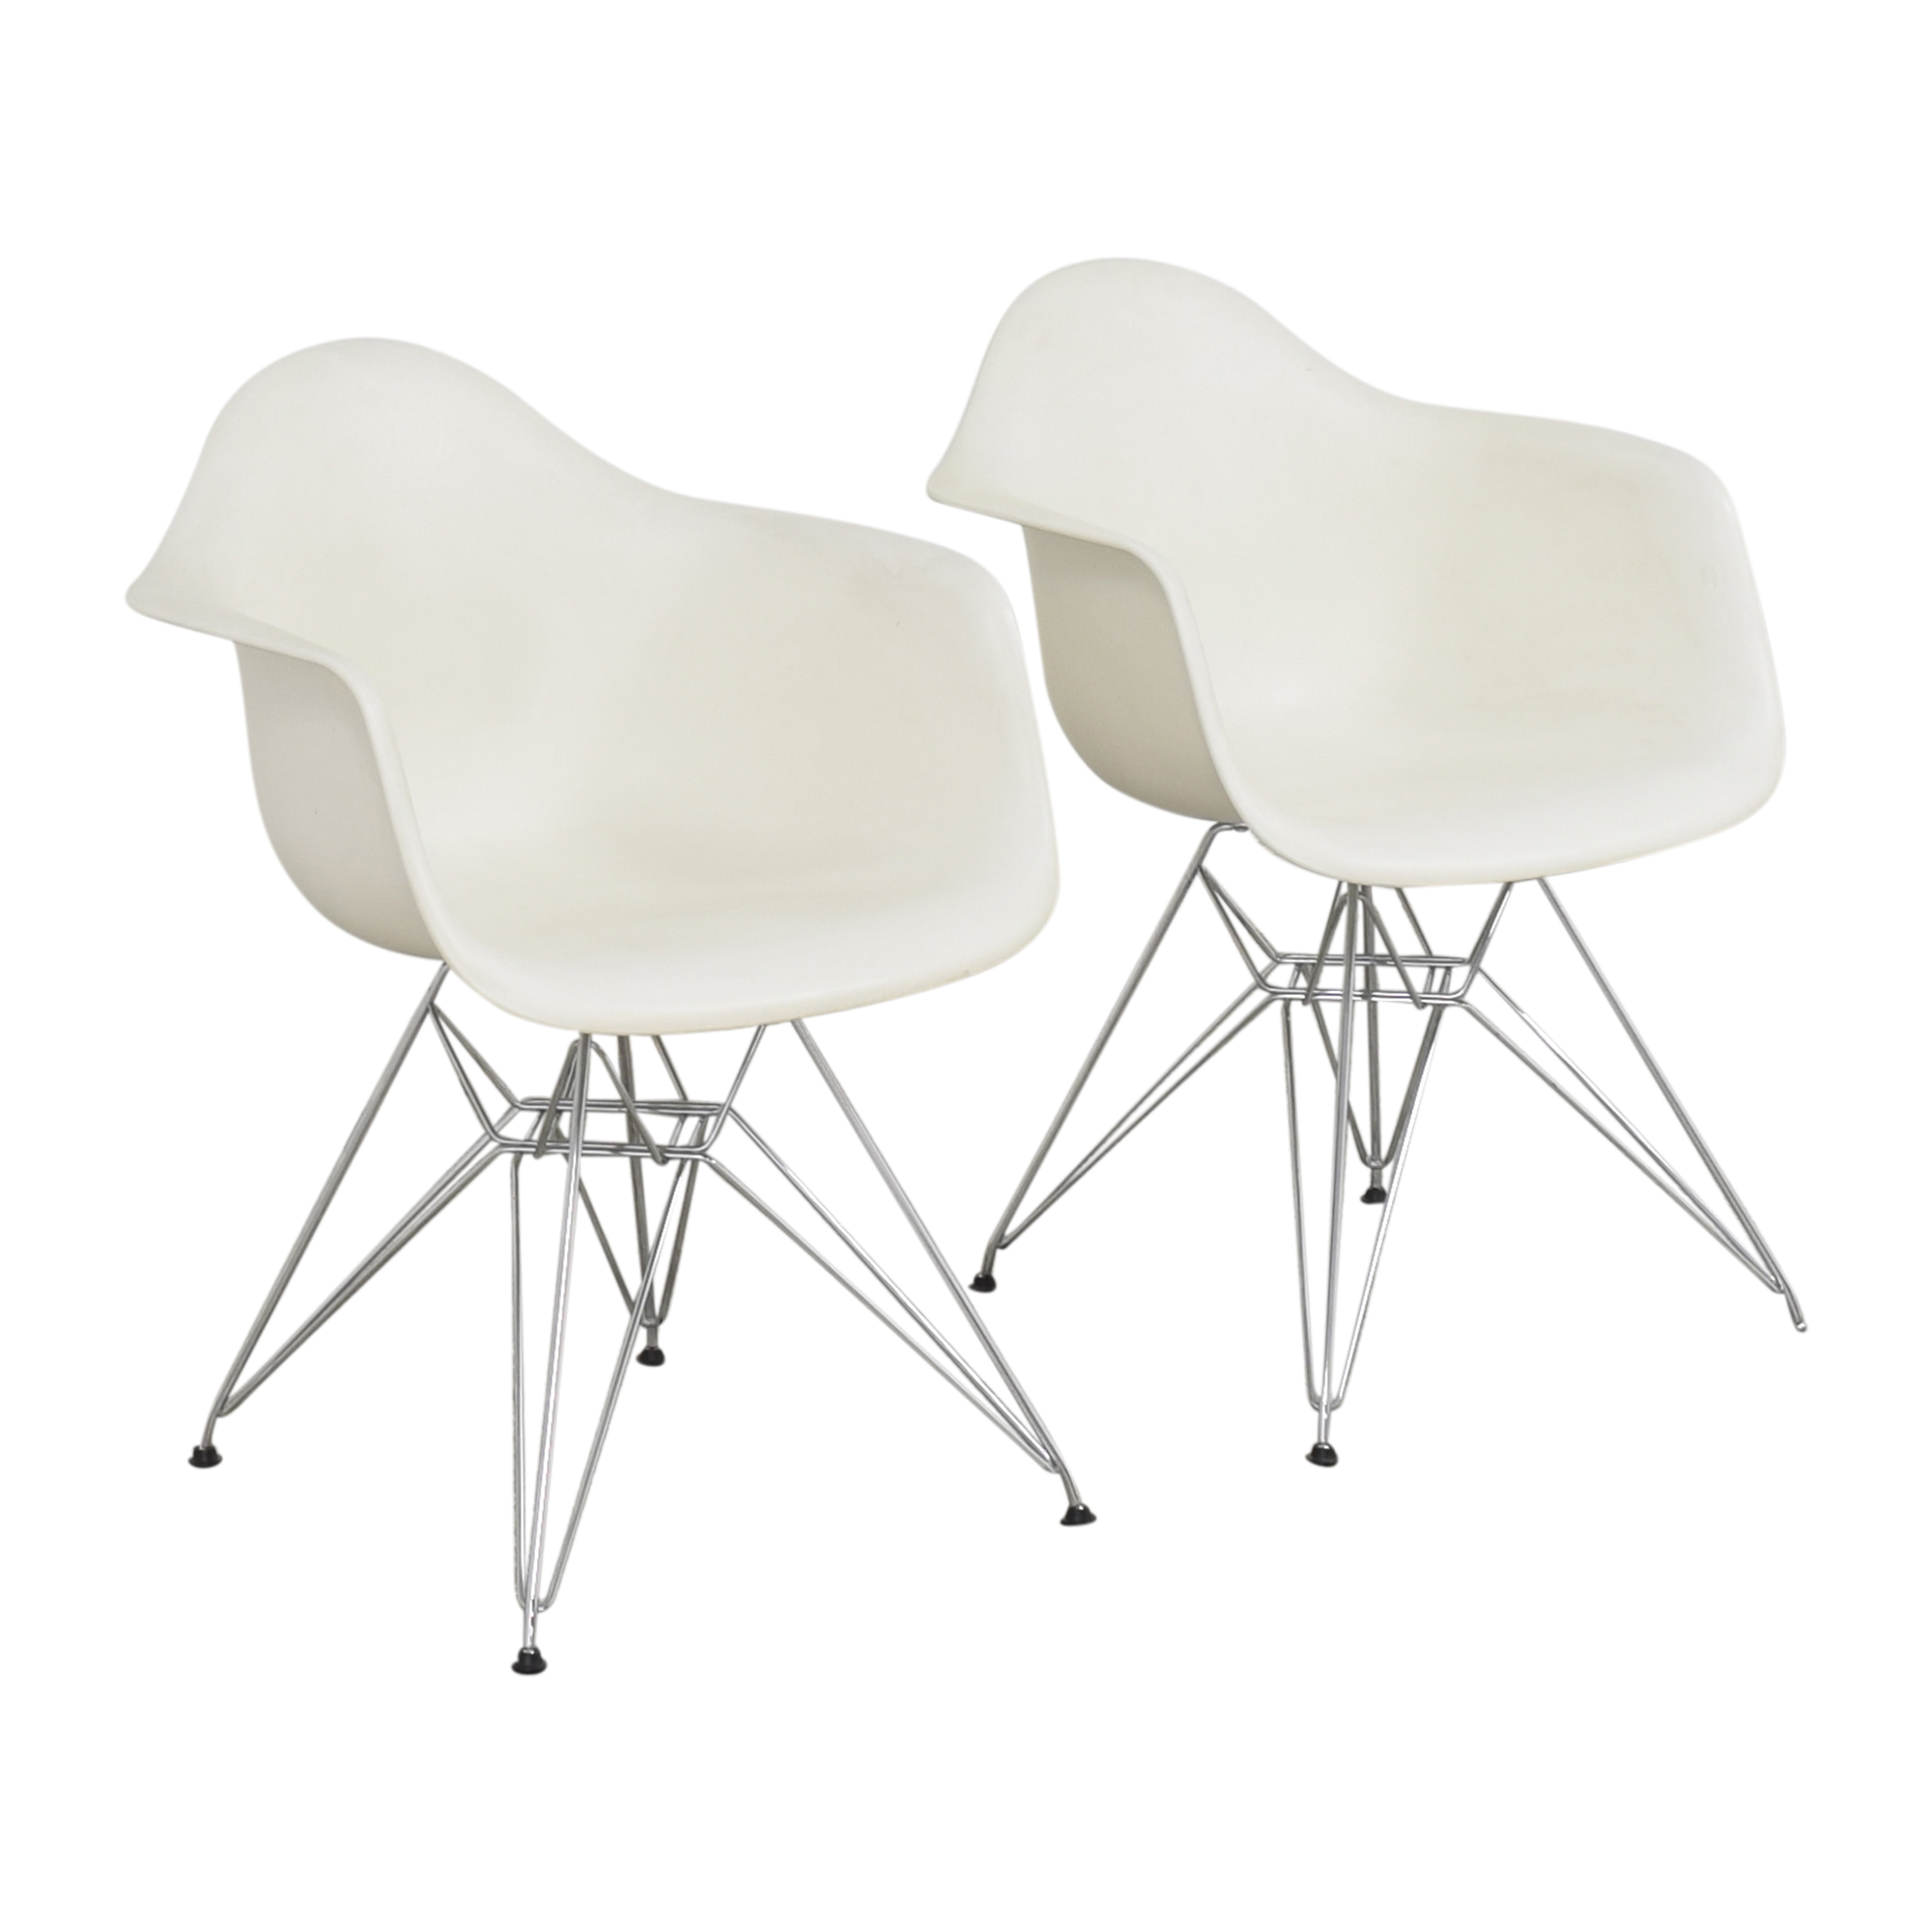 Herman Miller Eames Molded Arm Chairs / Chairs